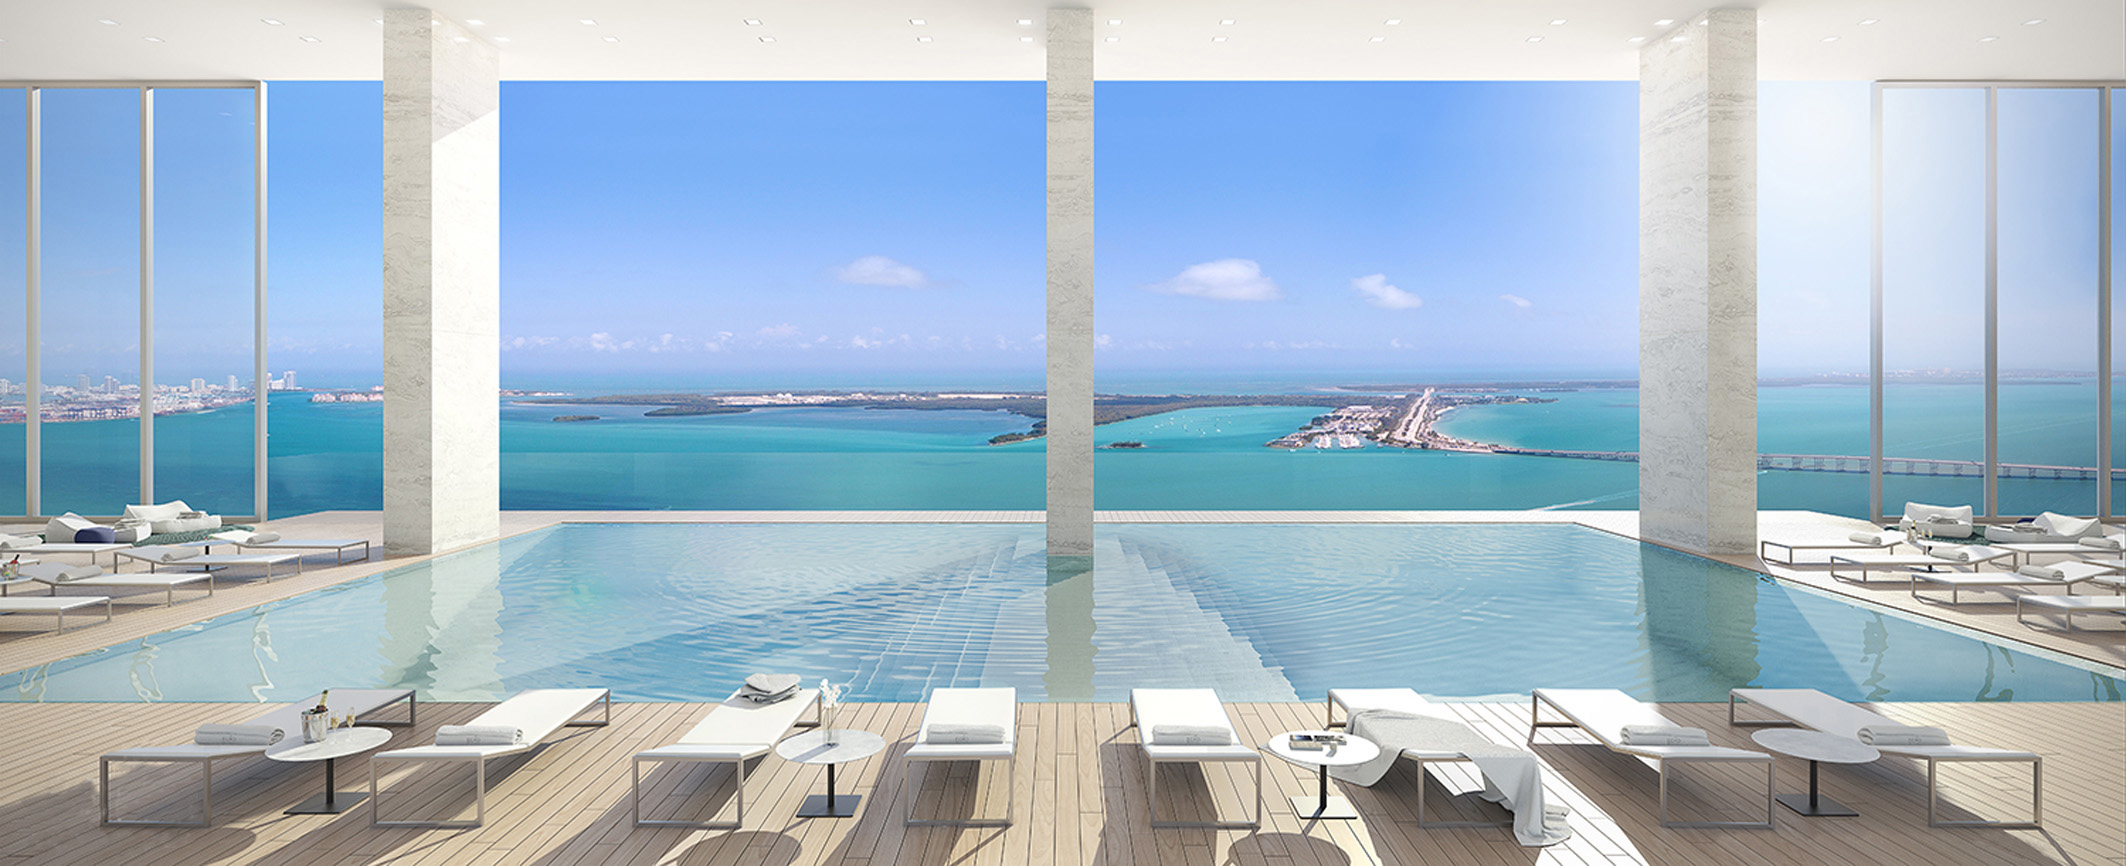 Rooftop pool overlooking the sea Miami Florida